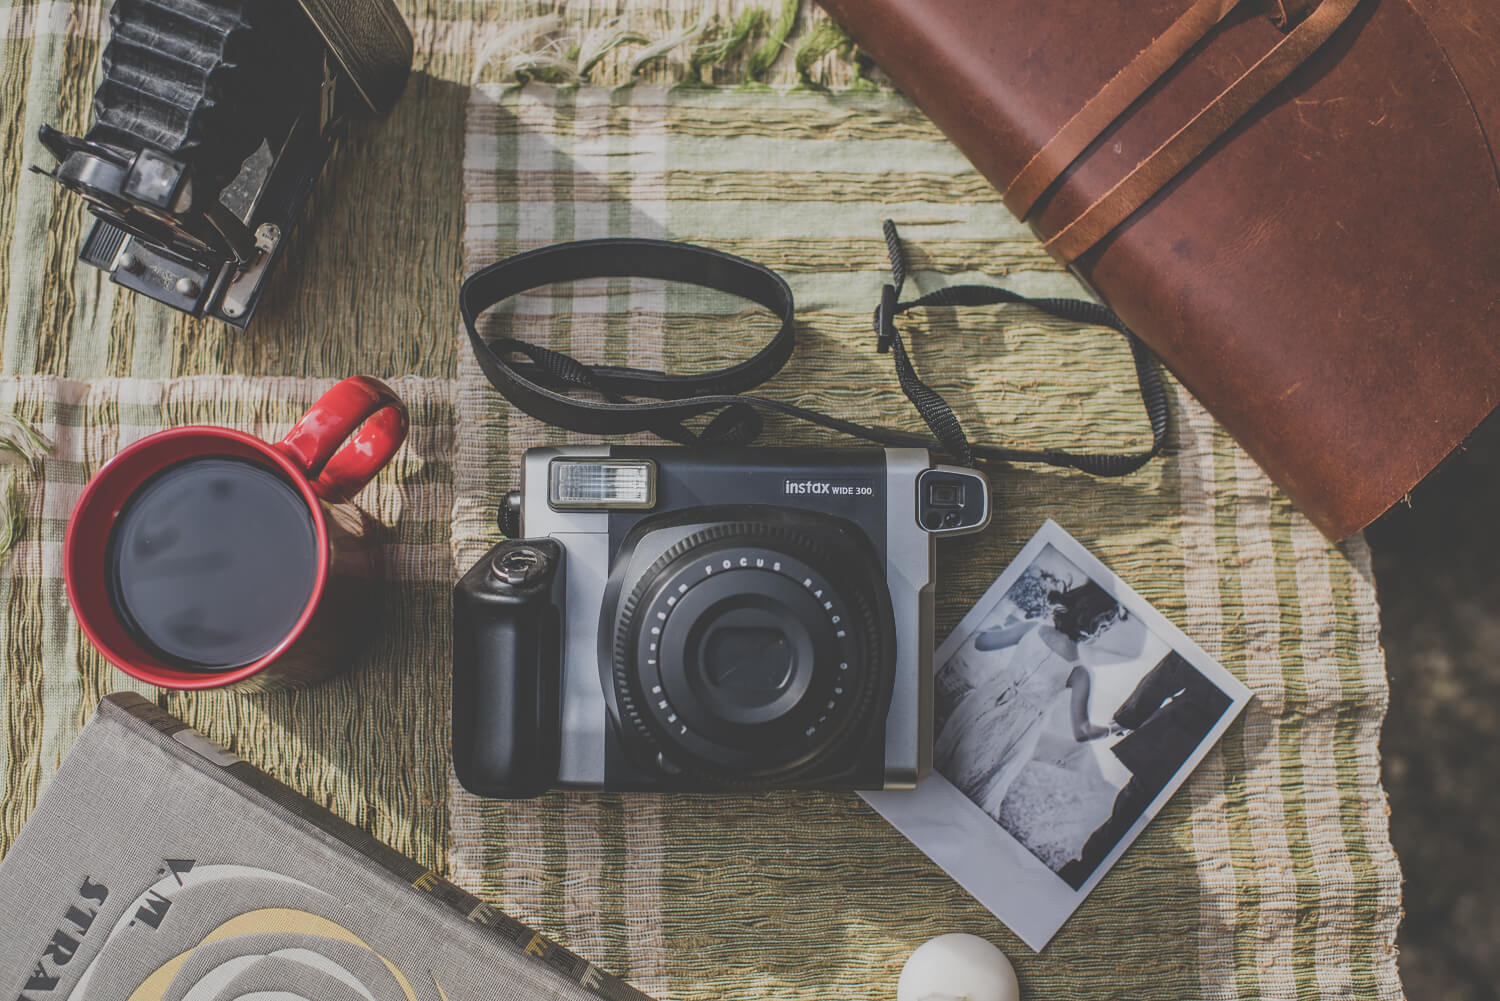 Miles-Photography-Flothemes-Materiale-10